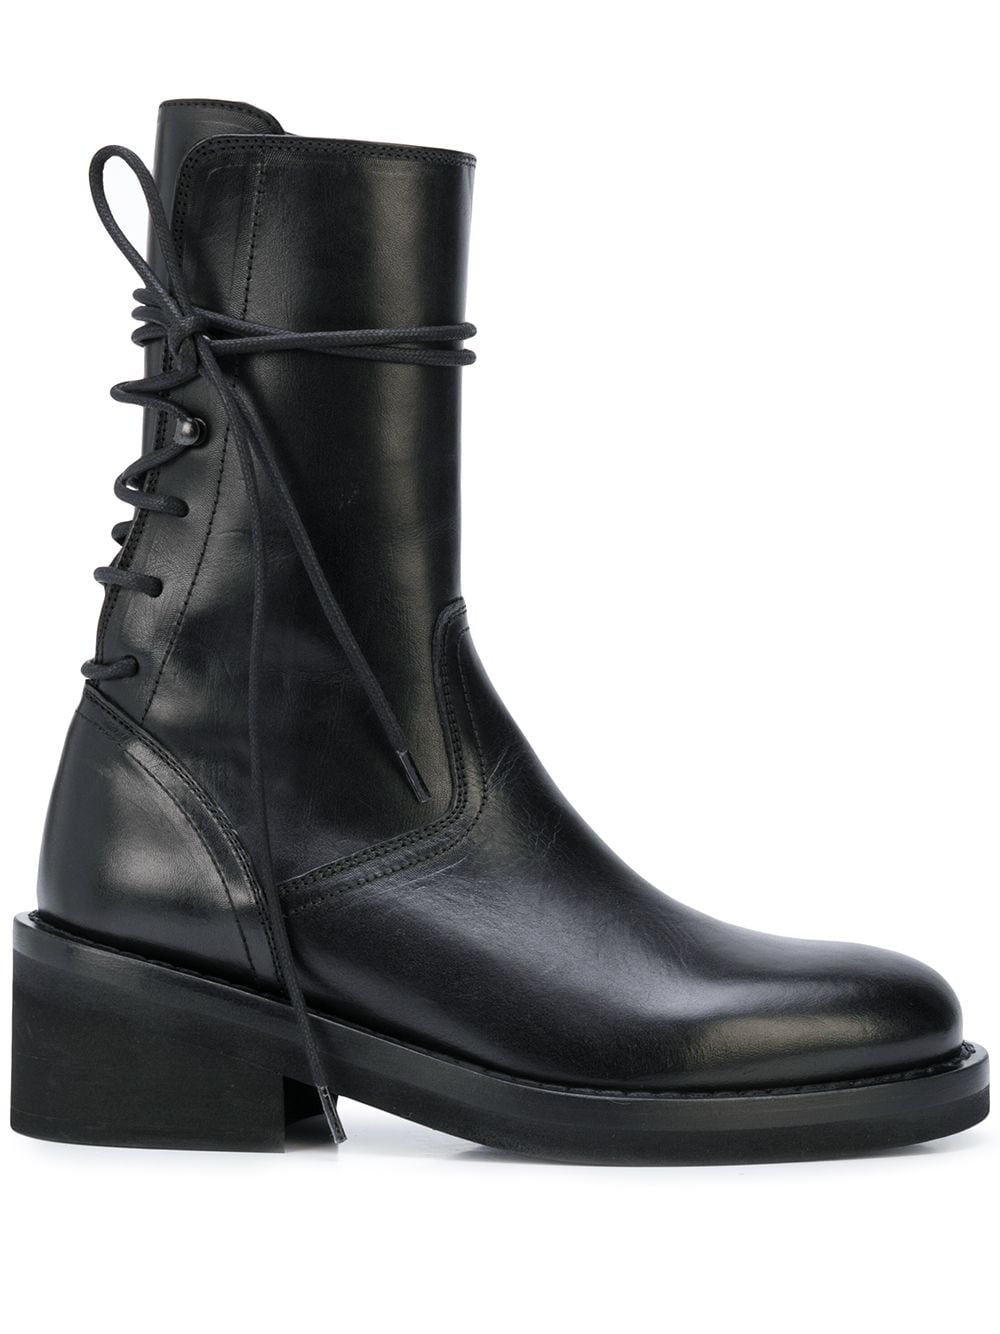 ANN DEMEULEMEESTER CLASSIC BACK LACE UP BOOTS